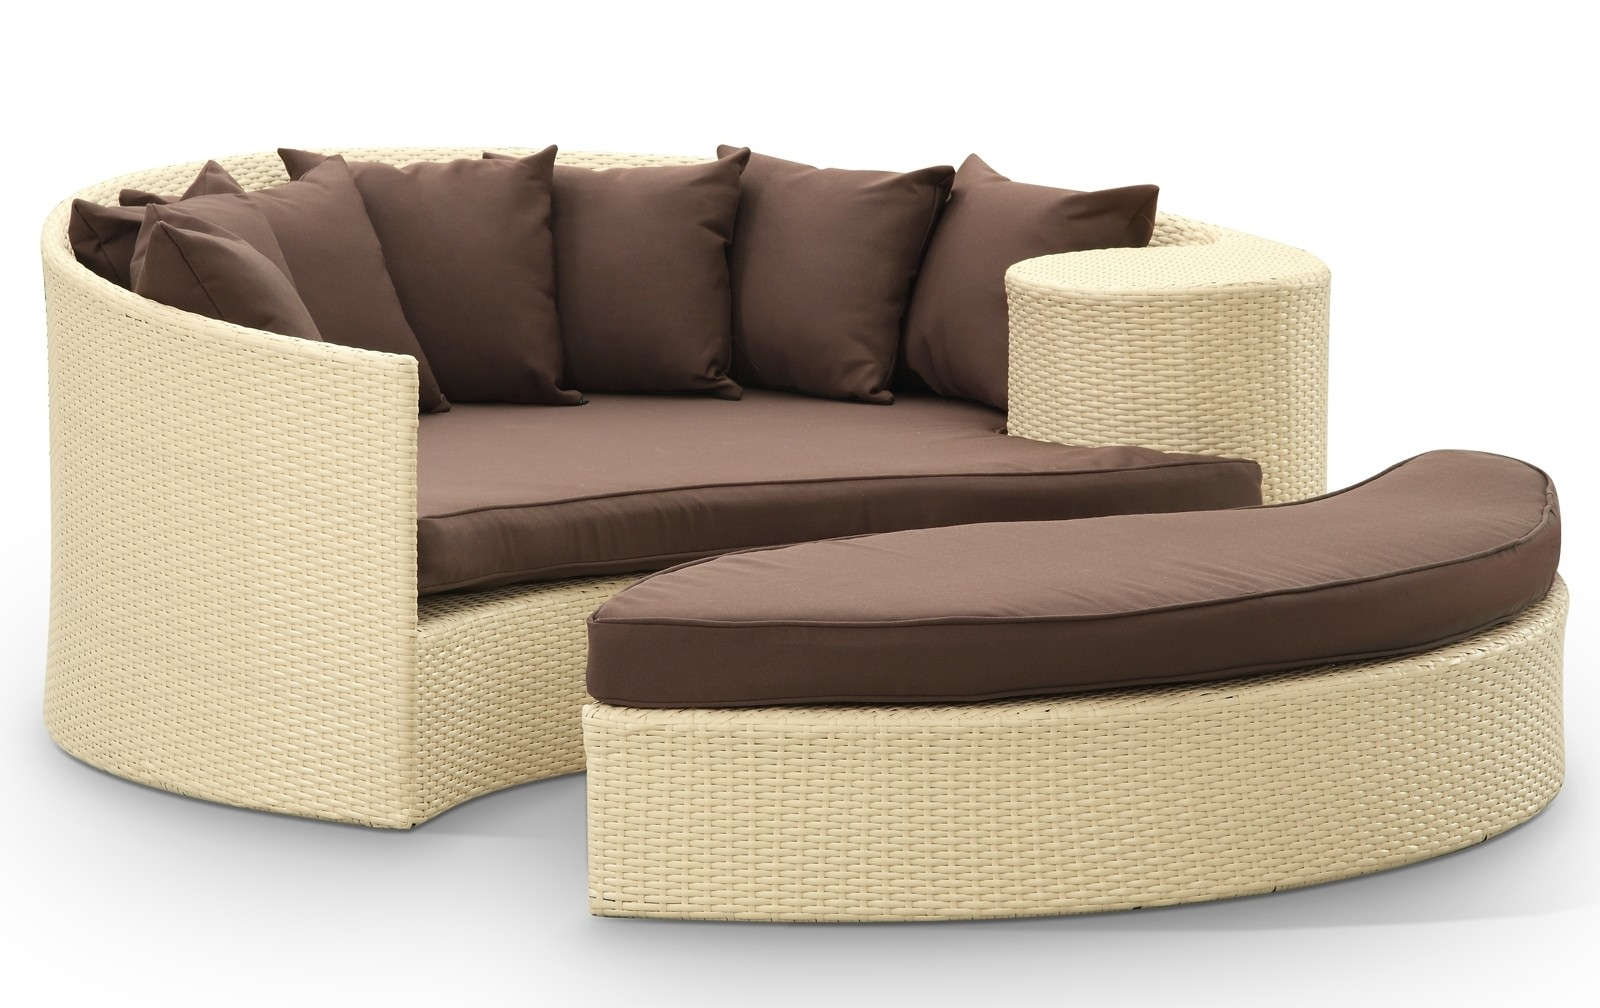 Taiji Outdoor Rattan Daybed with Ottoman in Tan with Brown